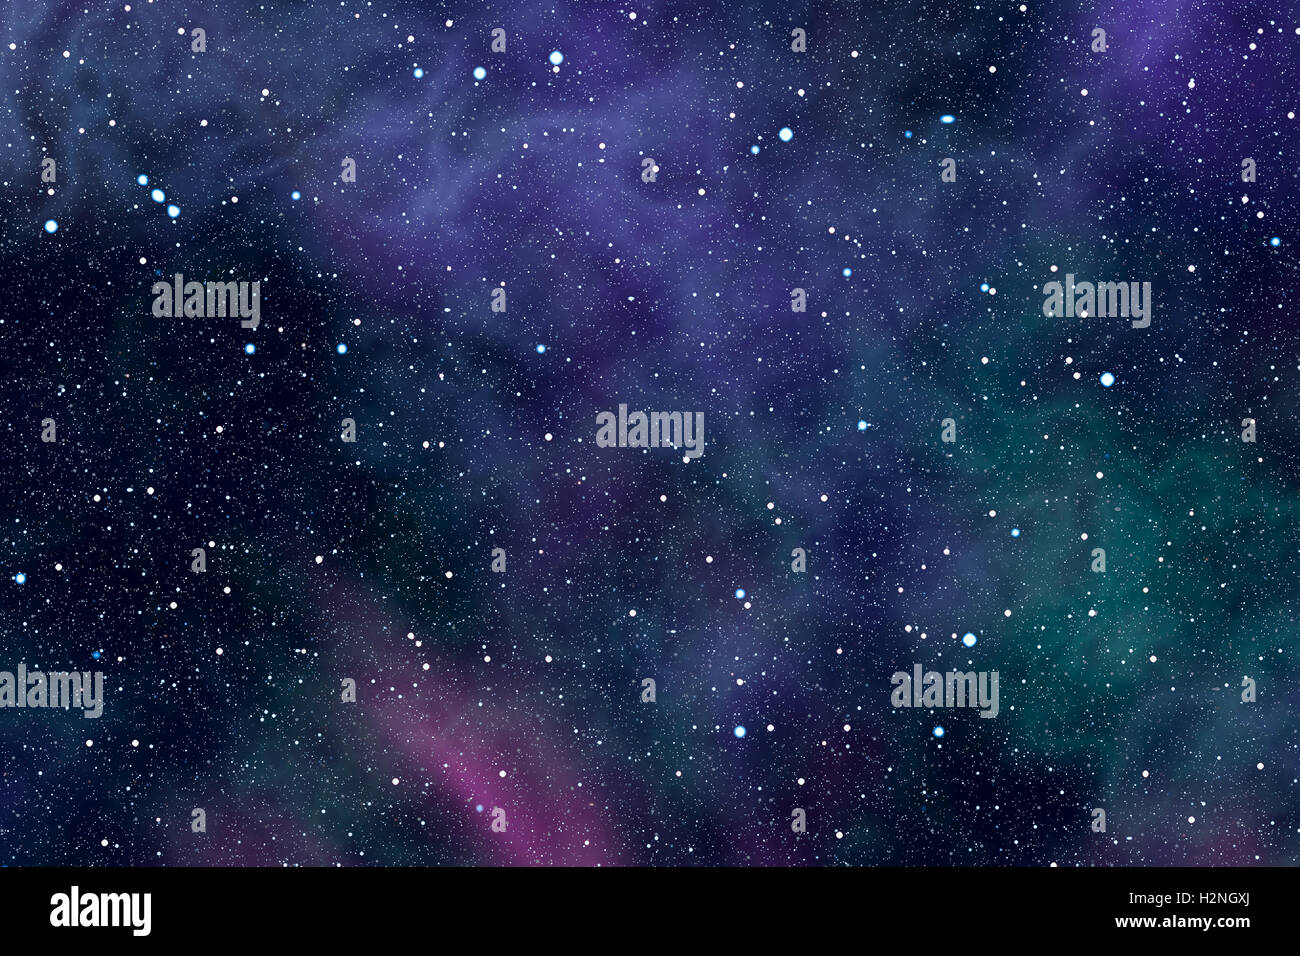 High resolution abstract background with cosmic space filled by stars and colored nebulae. - Stock Image